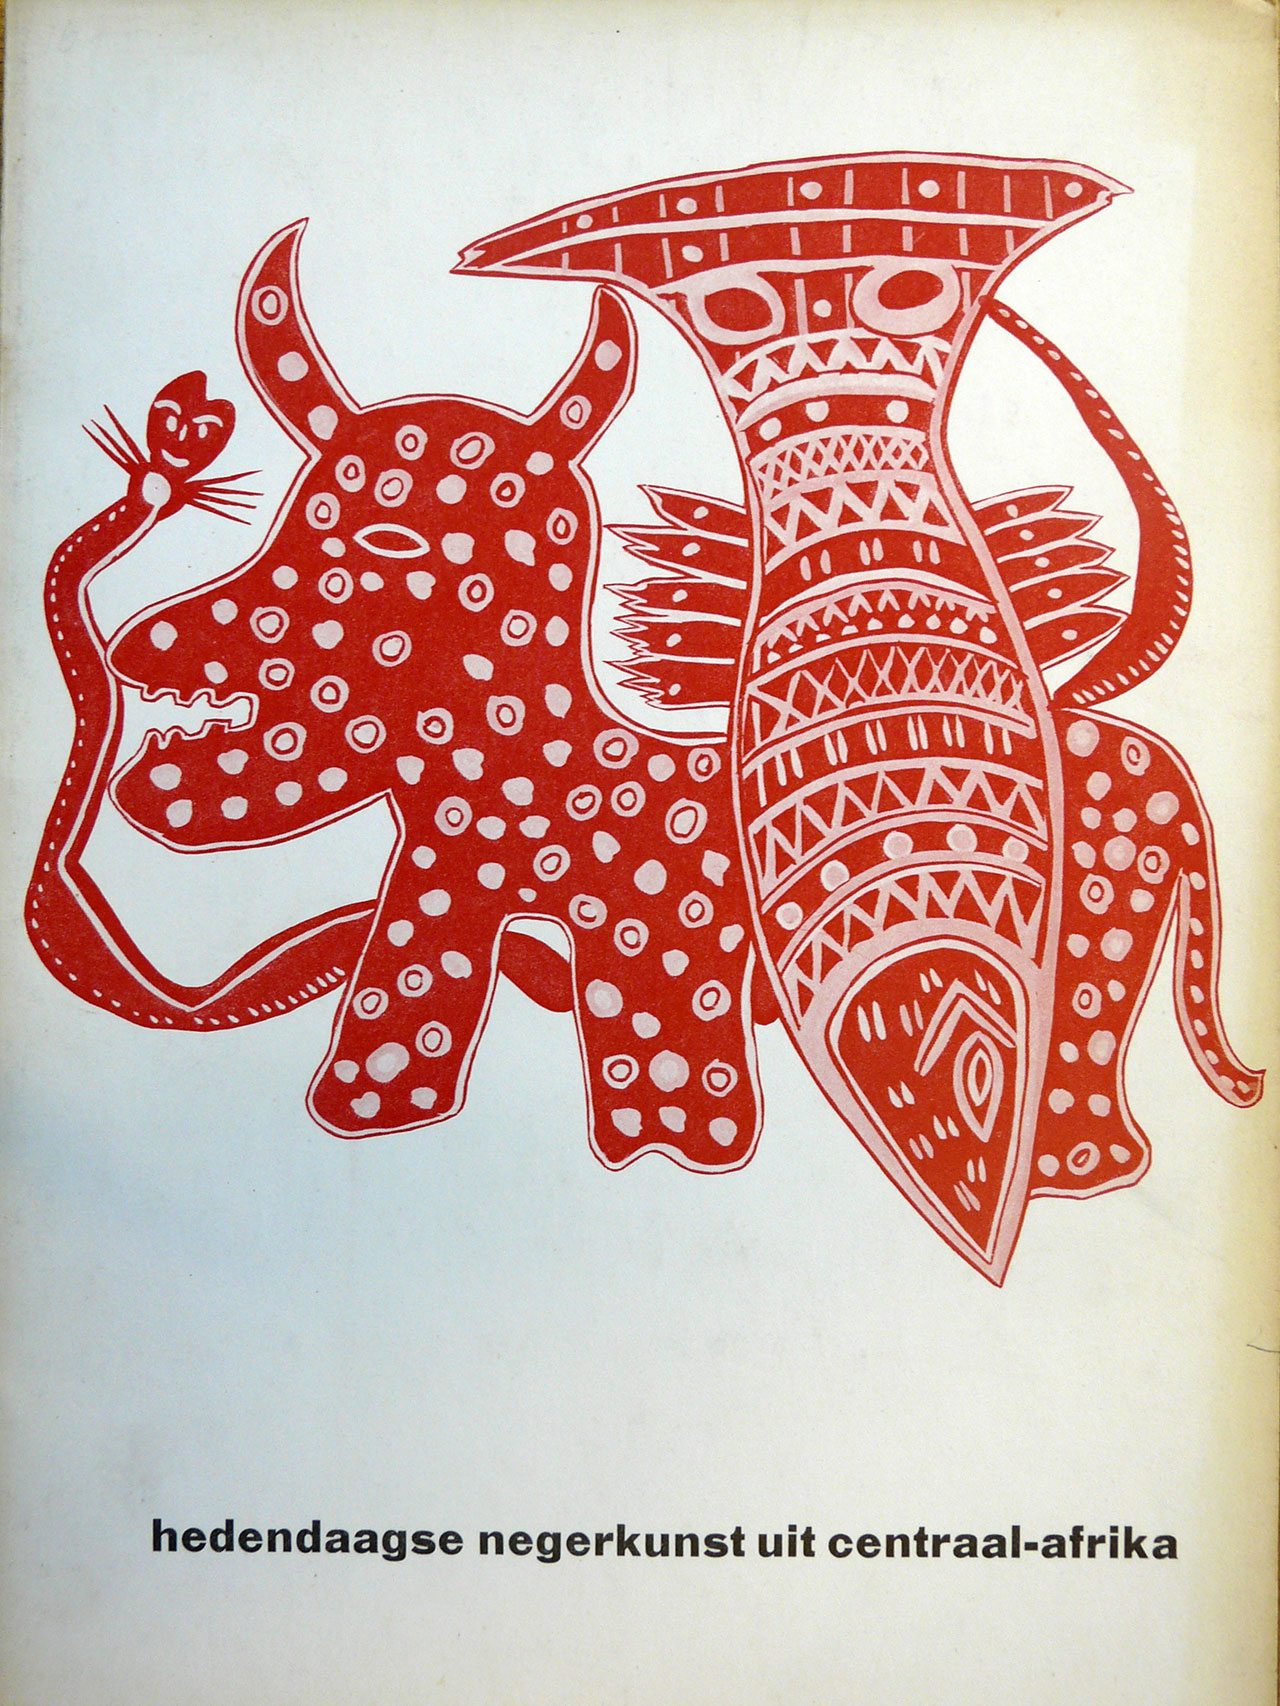 Fig 3. Cover of catalogue hedendaagse negerkunst uit Centraal-Afrika 1957.